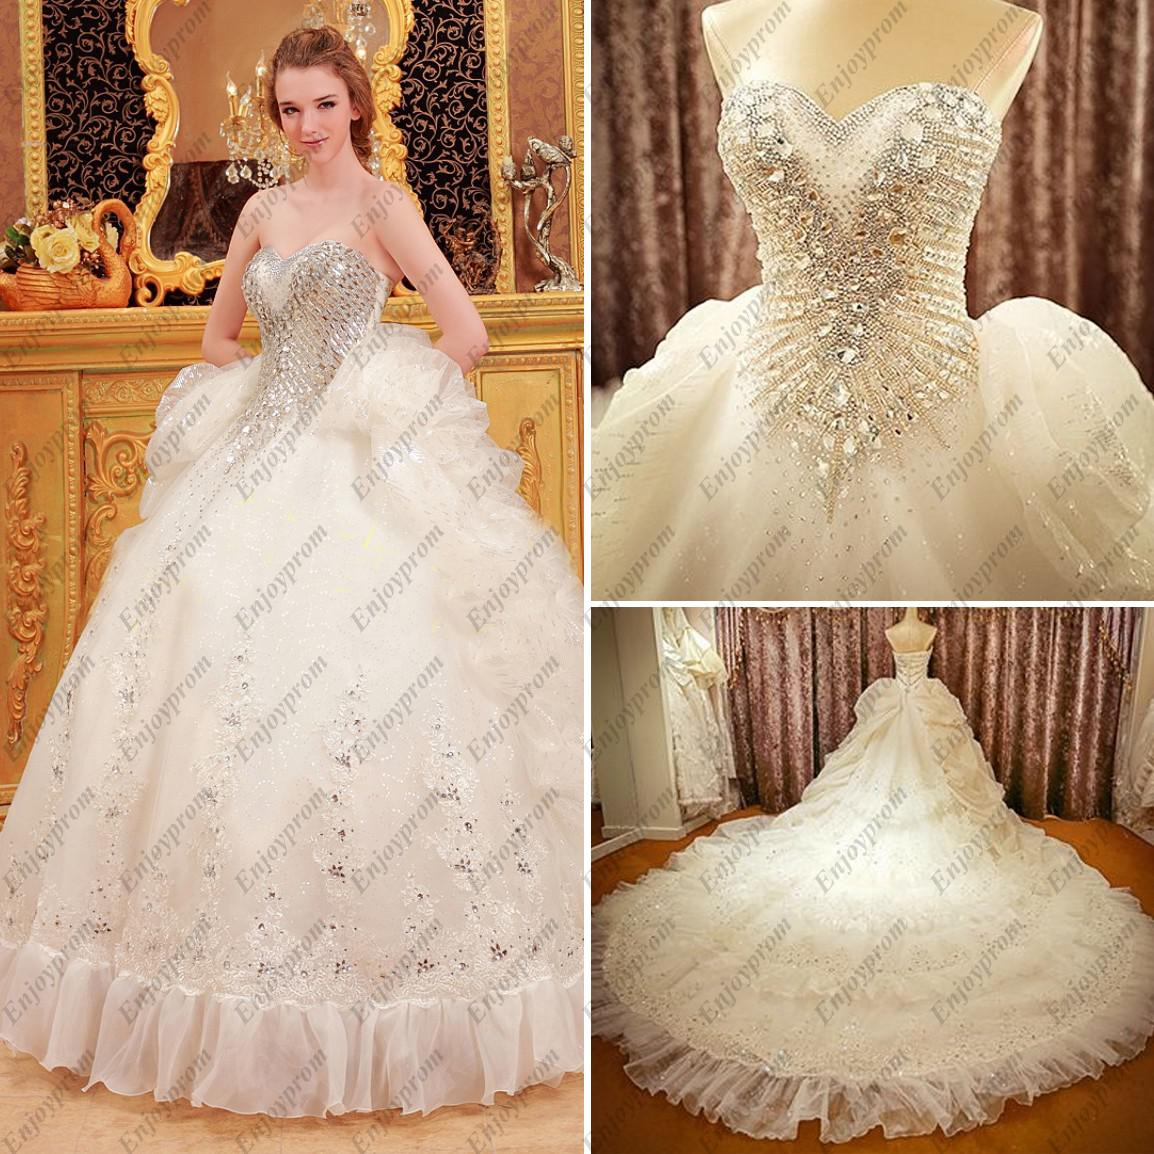 2014 Hot Ball Gown Wedding Dresses, Glamorous Organza Sweetheart ...